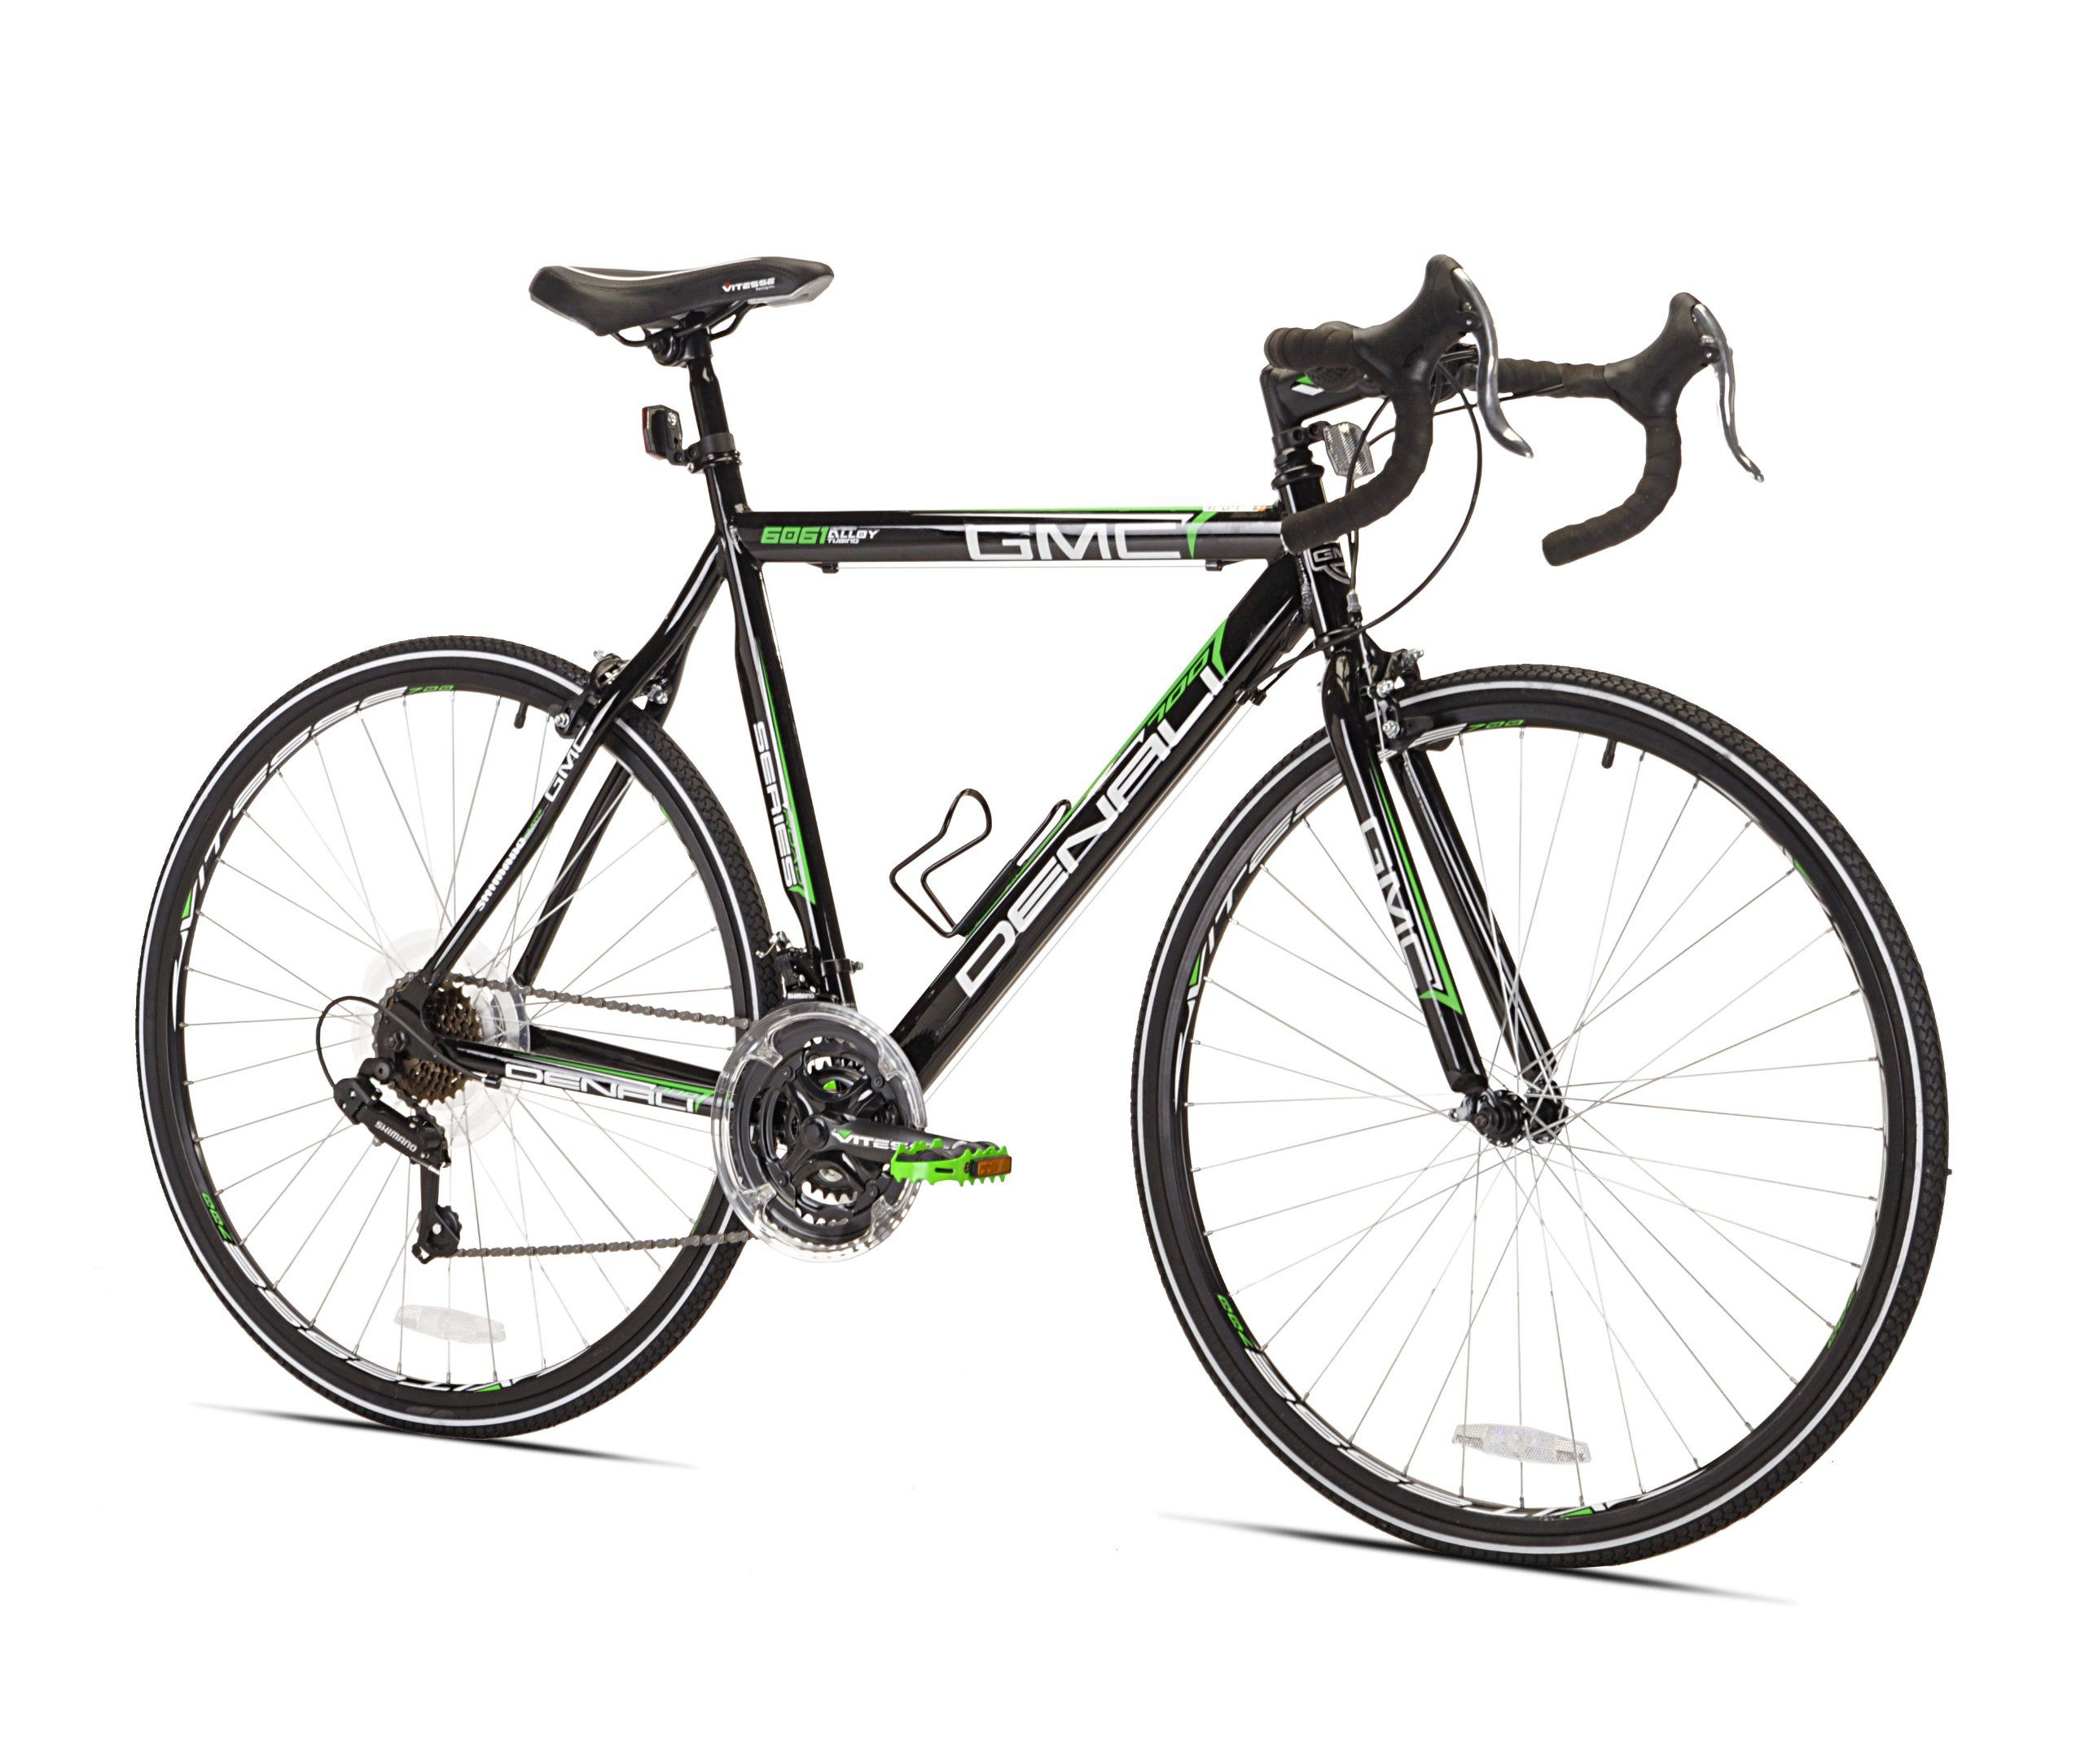 Gmc Denali Road Bike Black Green 22 5 Inch Medium Gmc Denali Sport Fixie